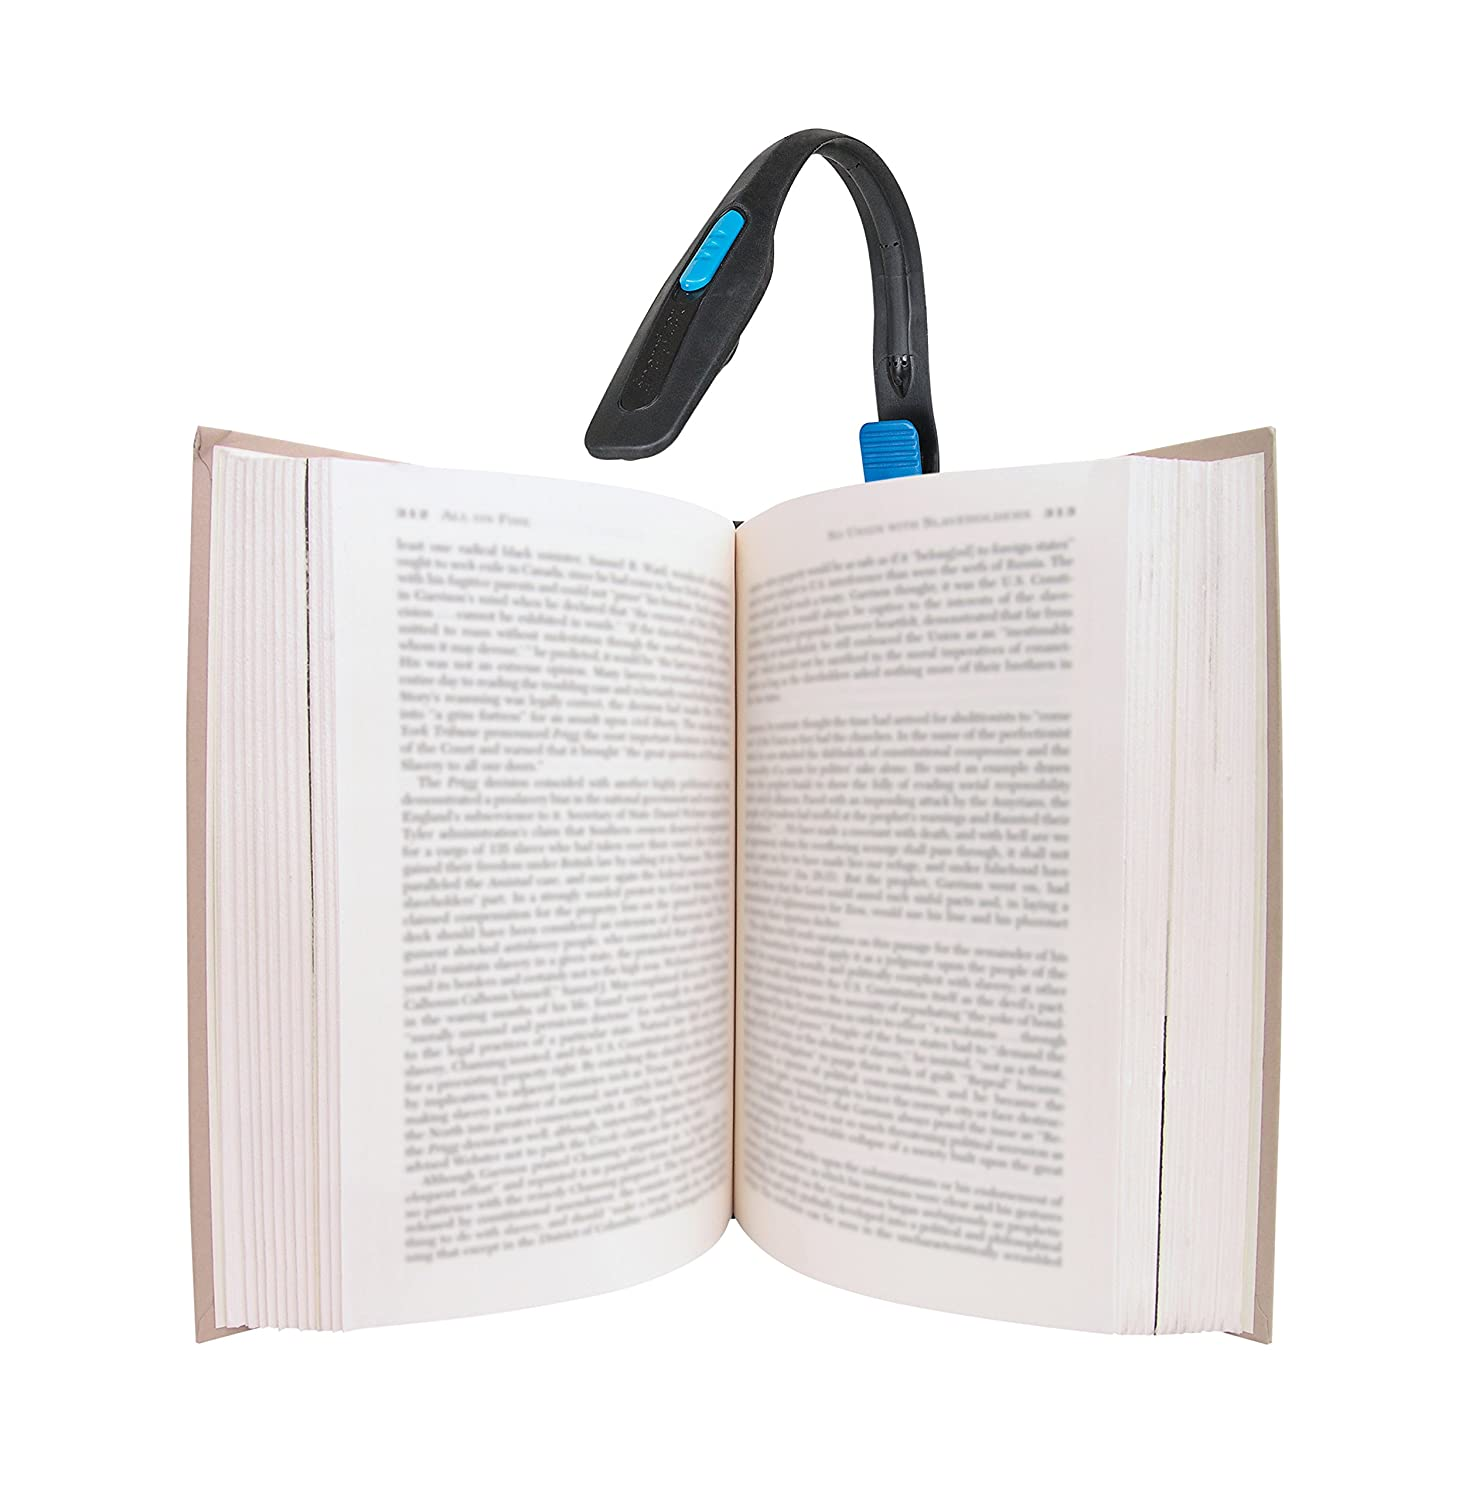 energizer lightweight led clip book light for reading